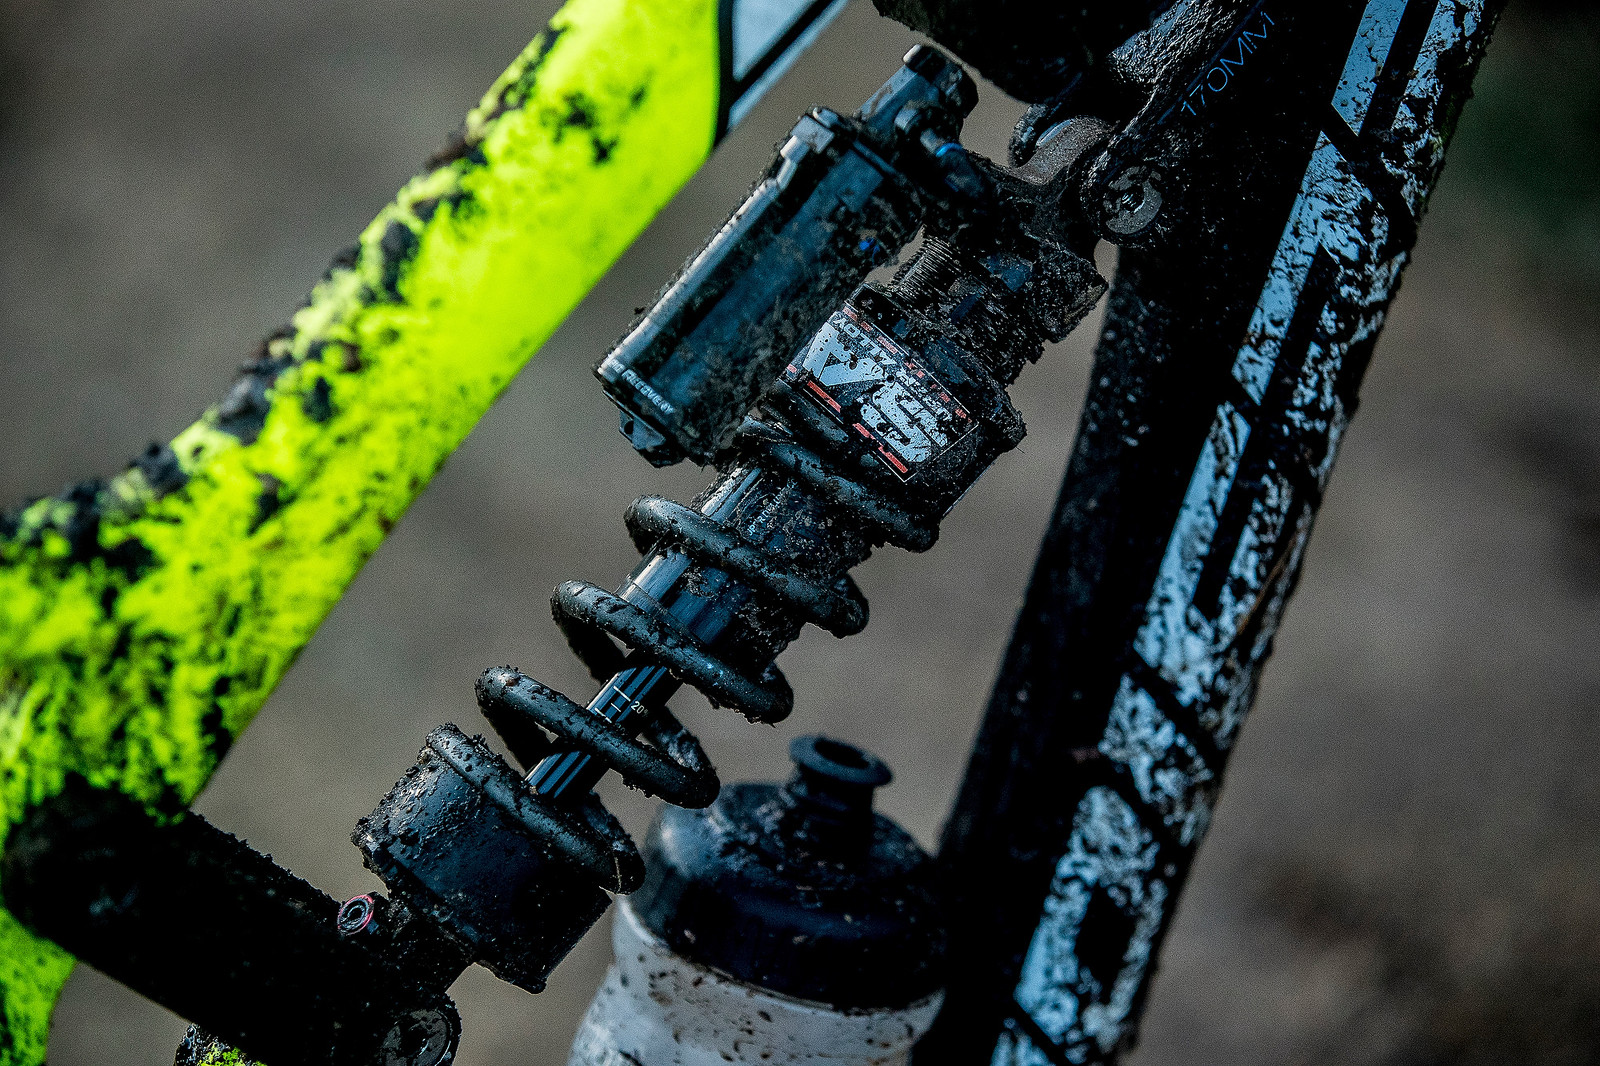 RockShox Super Deluxe coil shock with a super light SAR (Stendec) steel spring, tuned by Nico Vouilloz himself.